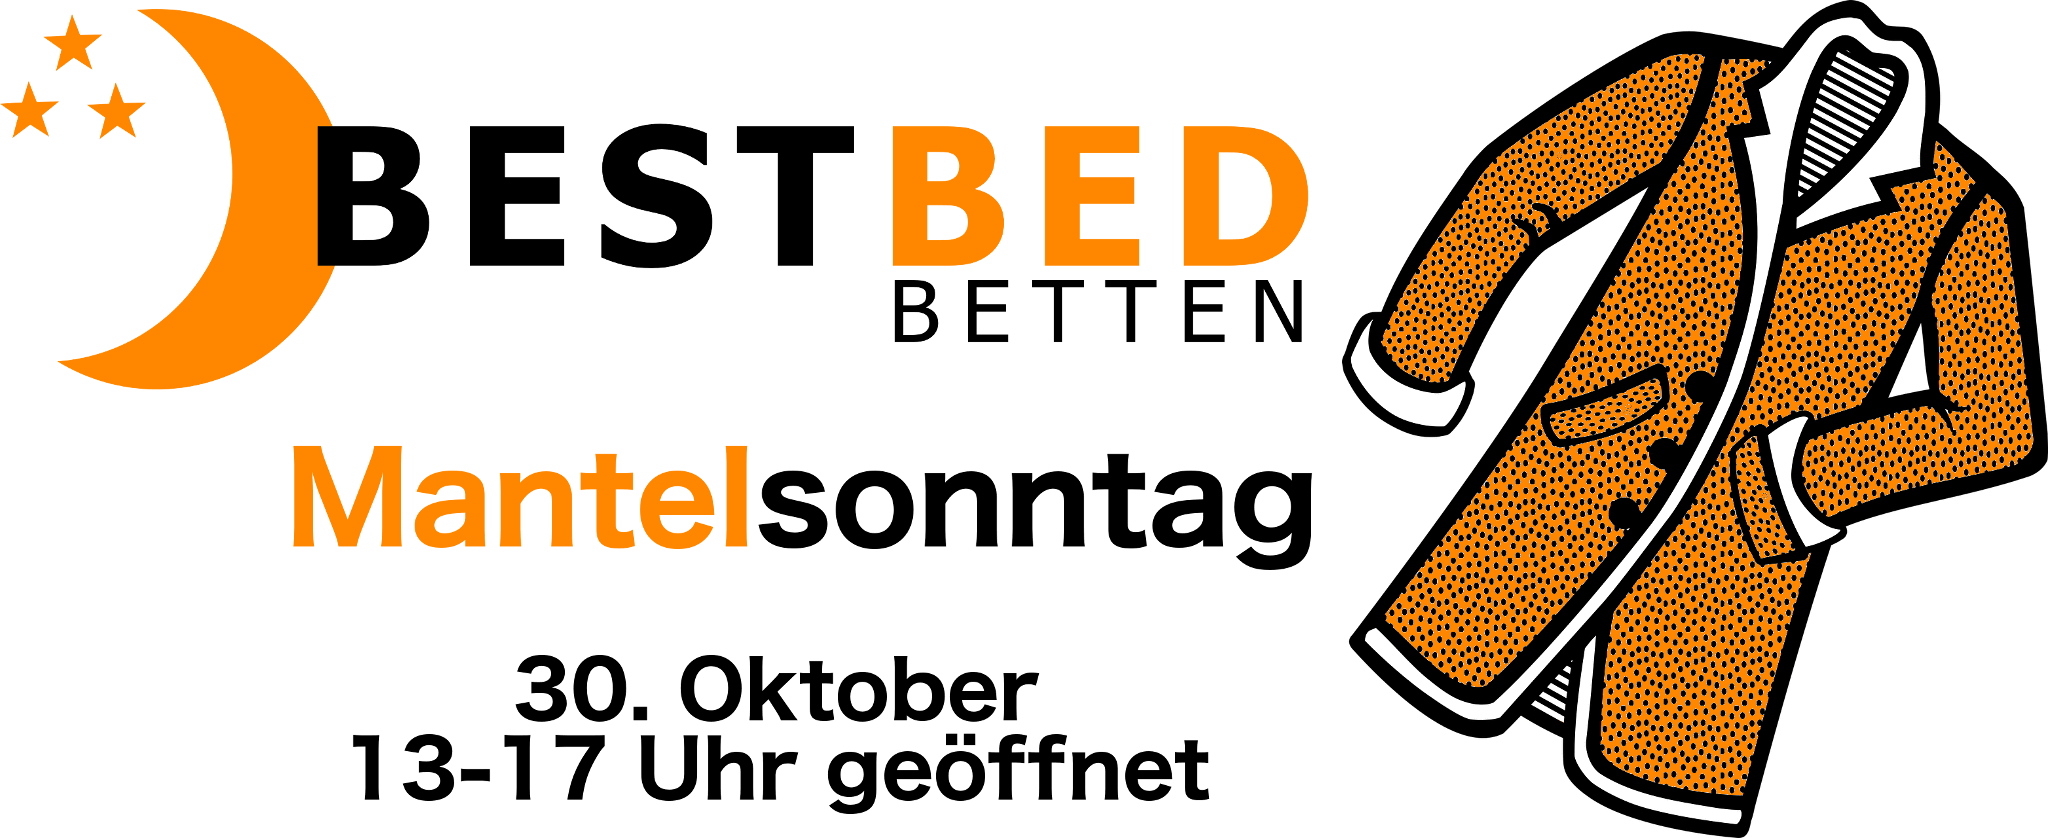 mantelsonntag-bestbed2048